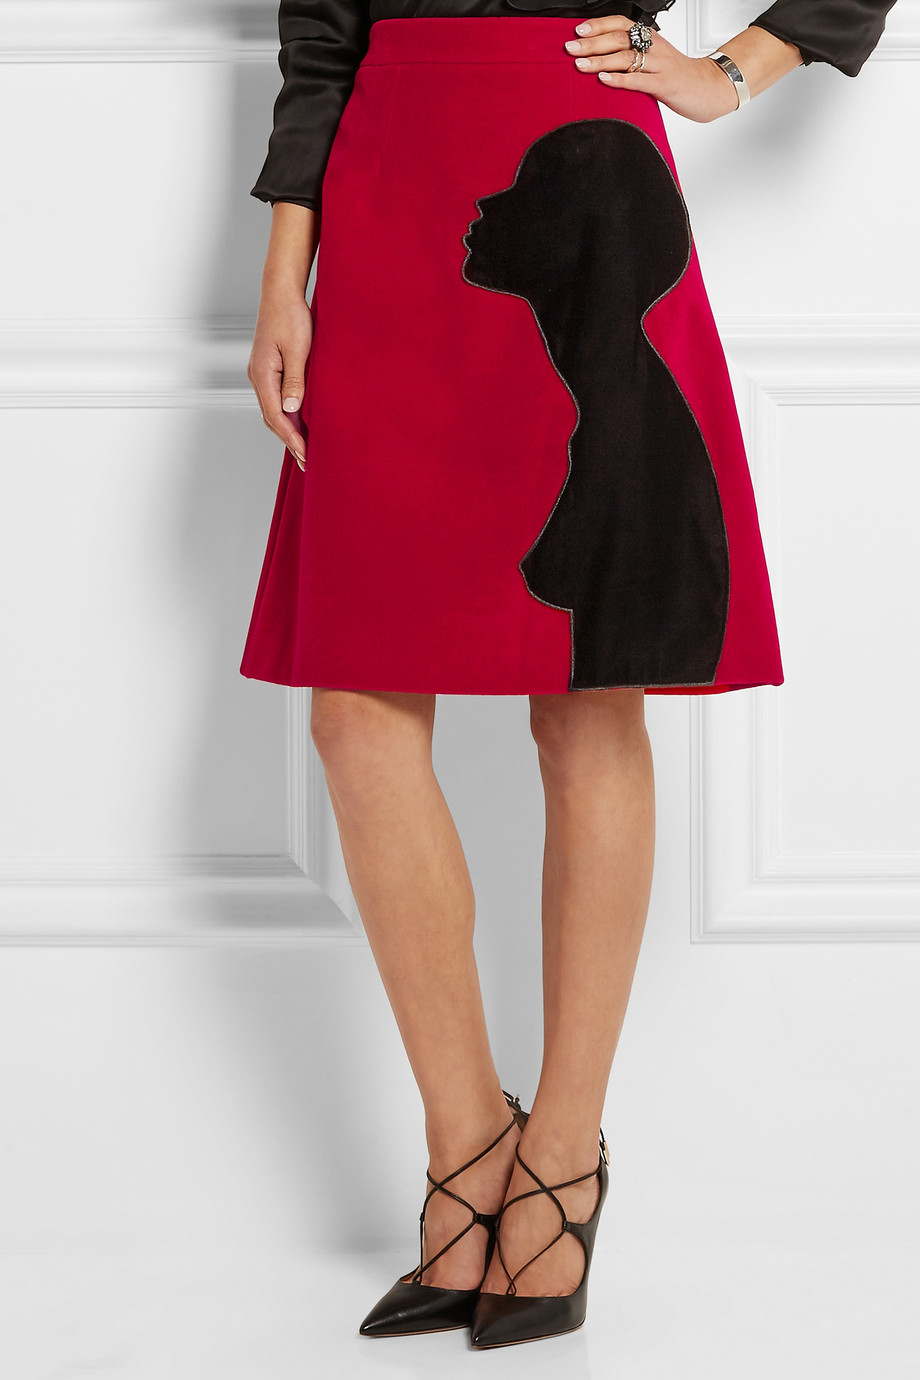 You can purchase this new skirt by Christopher Kane for the sale price of $406- from  Net-A-Porter